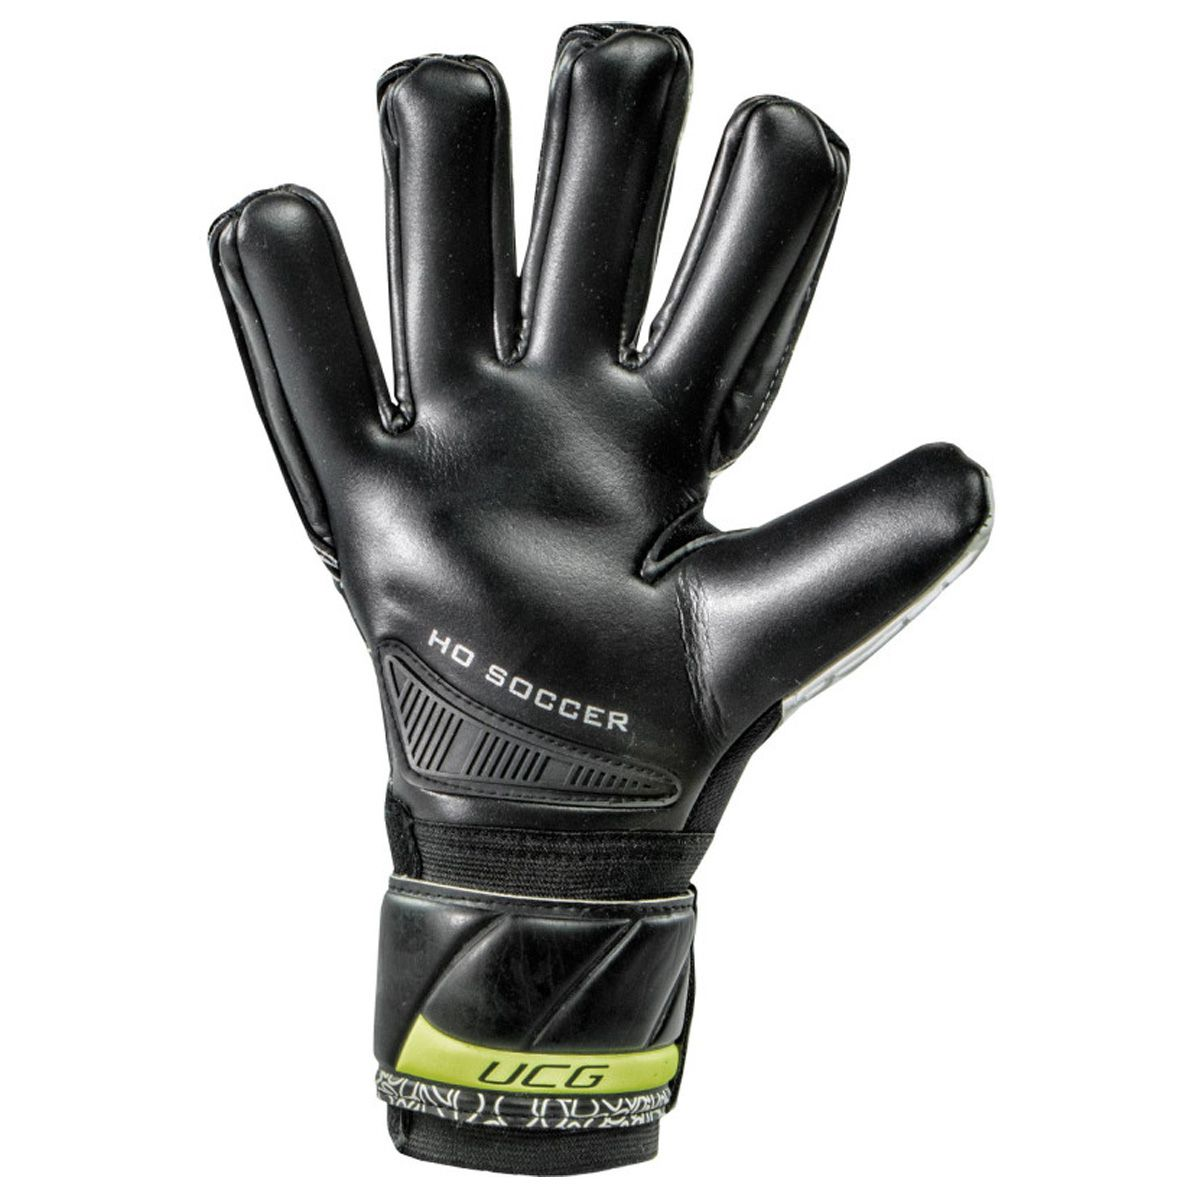 Luva Goleiro HO Soccer One Negative Black White Lime 9137